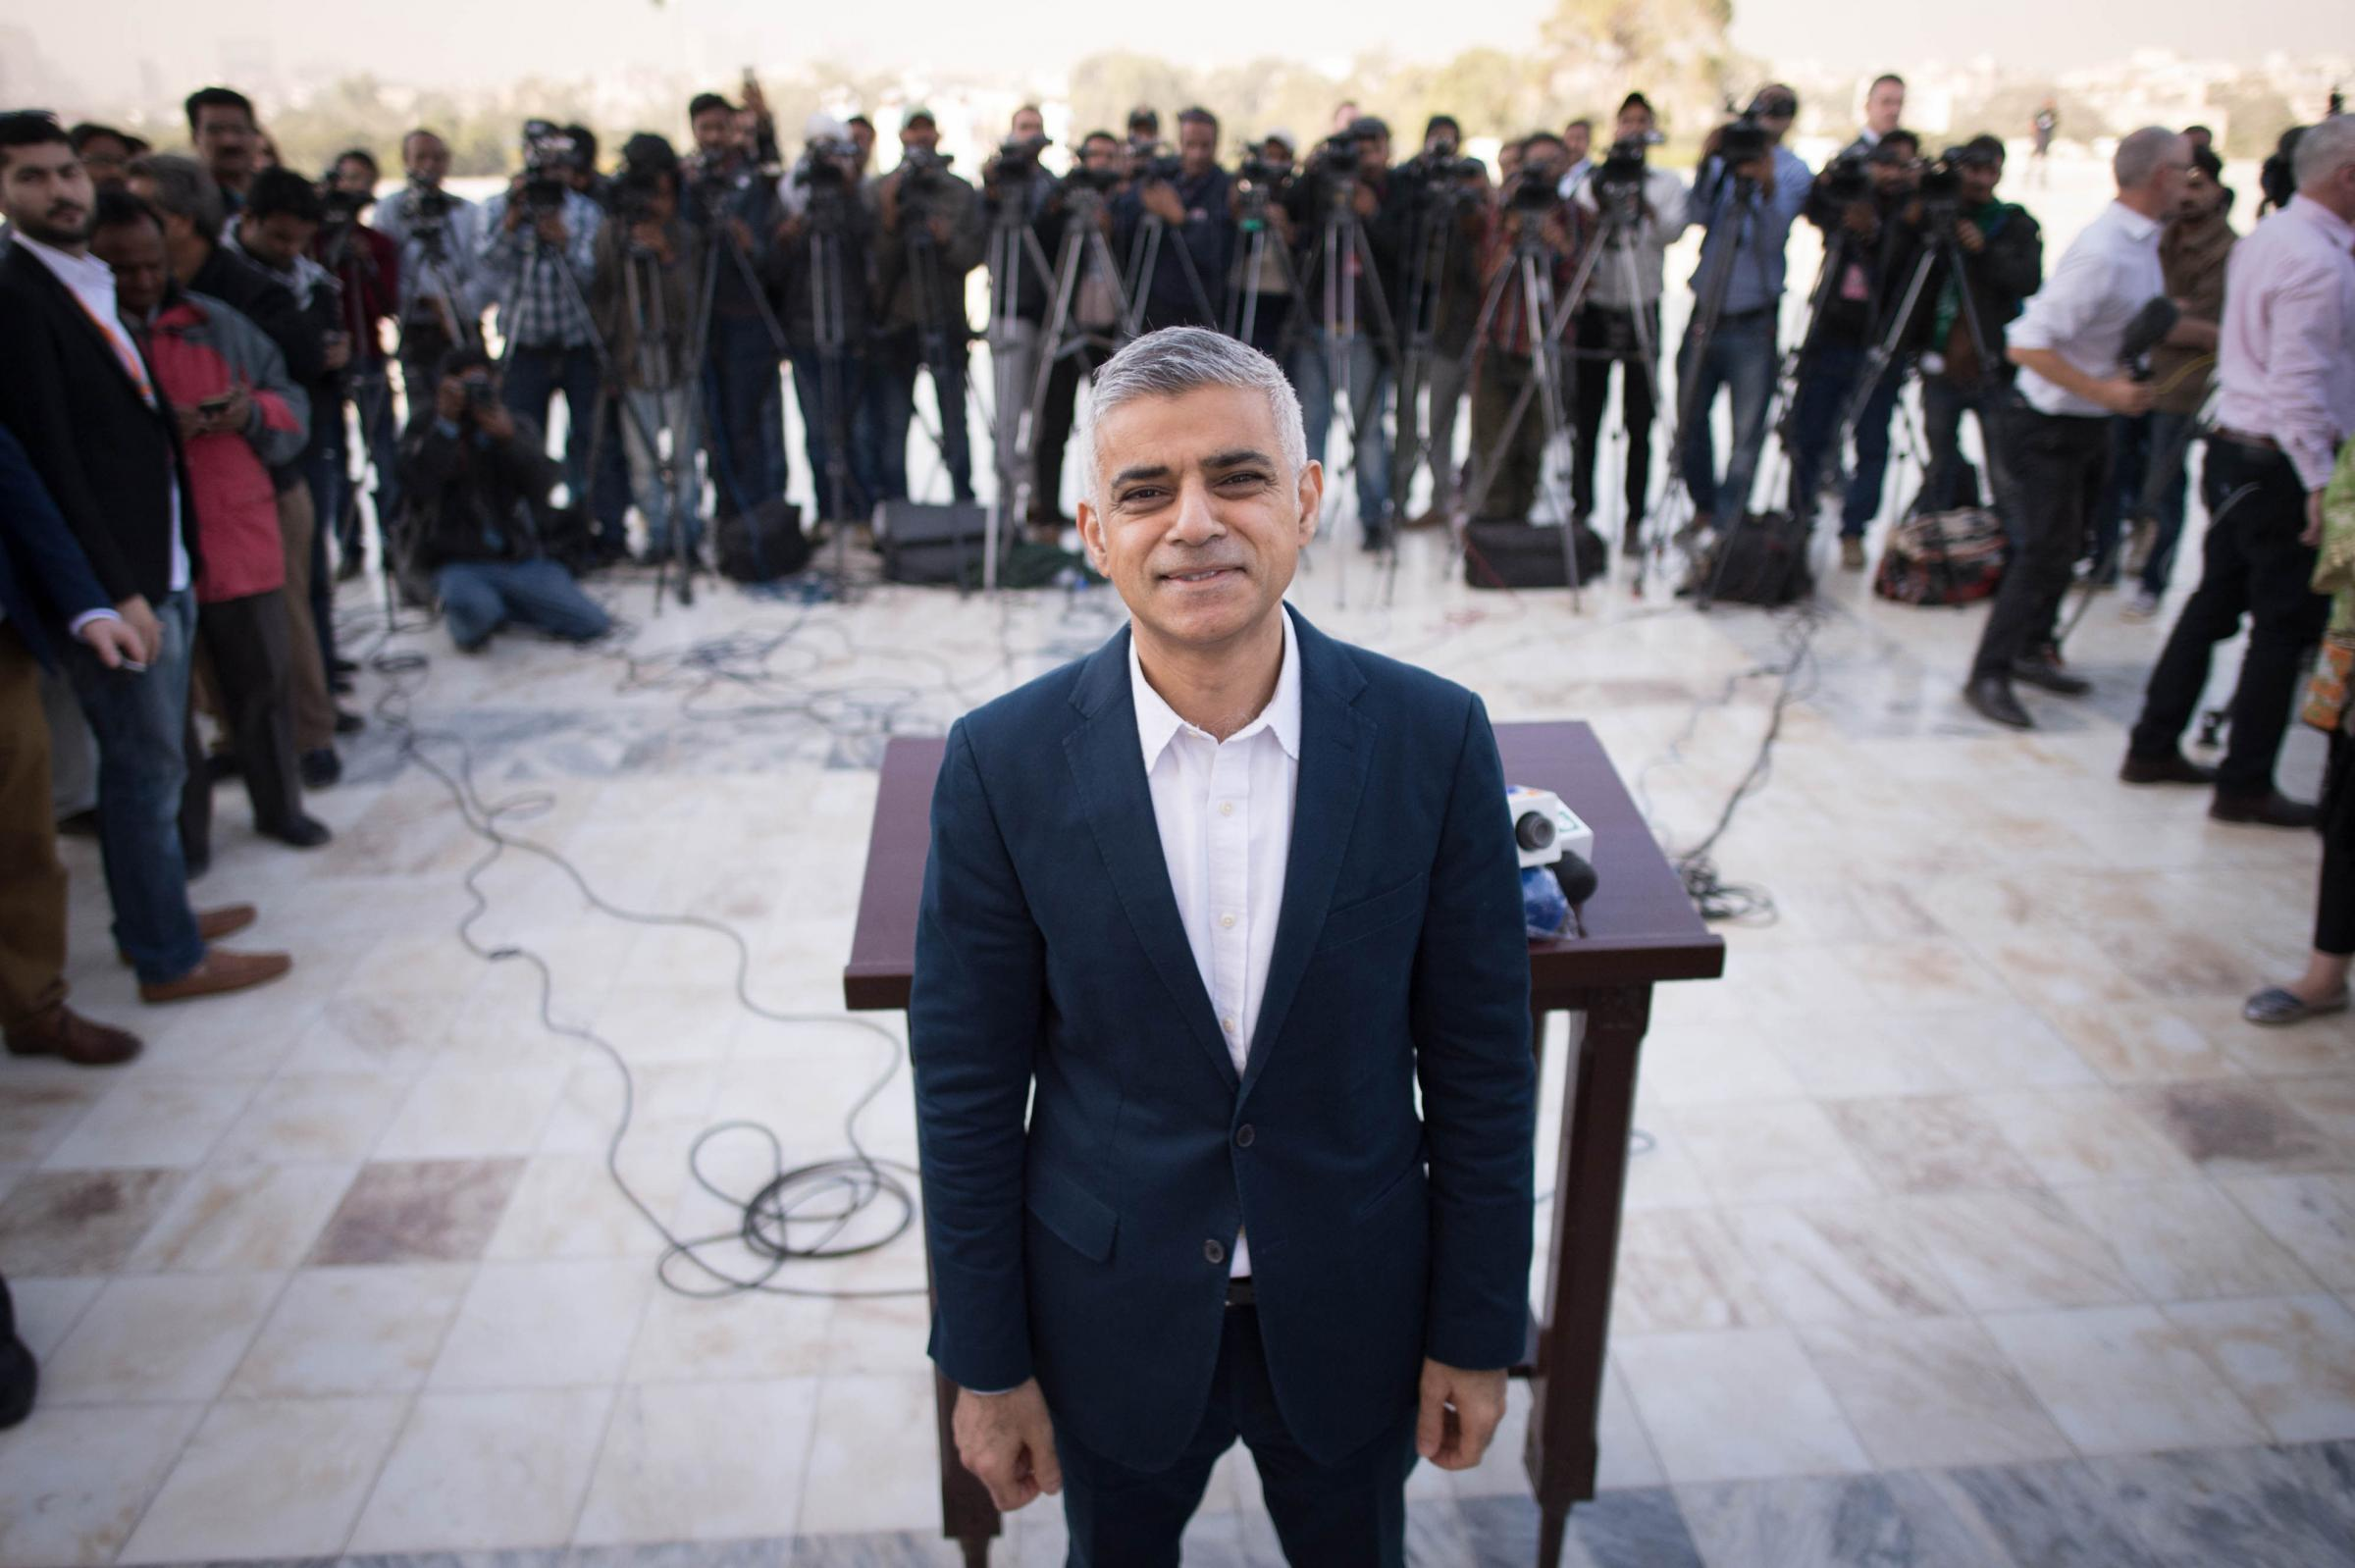 London Mayor Sadiq Khan speaks to business leaders, youth at Habib University